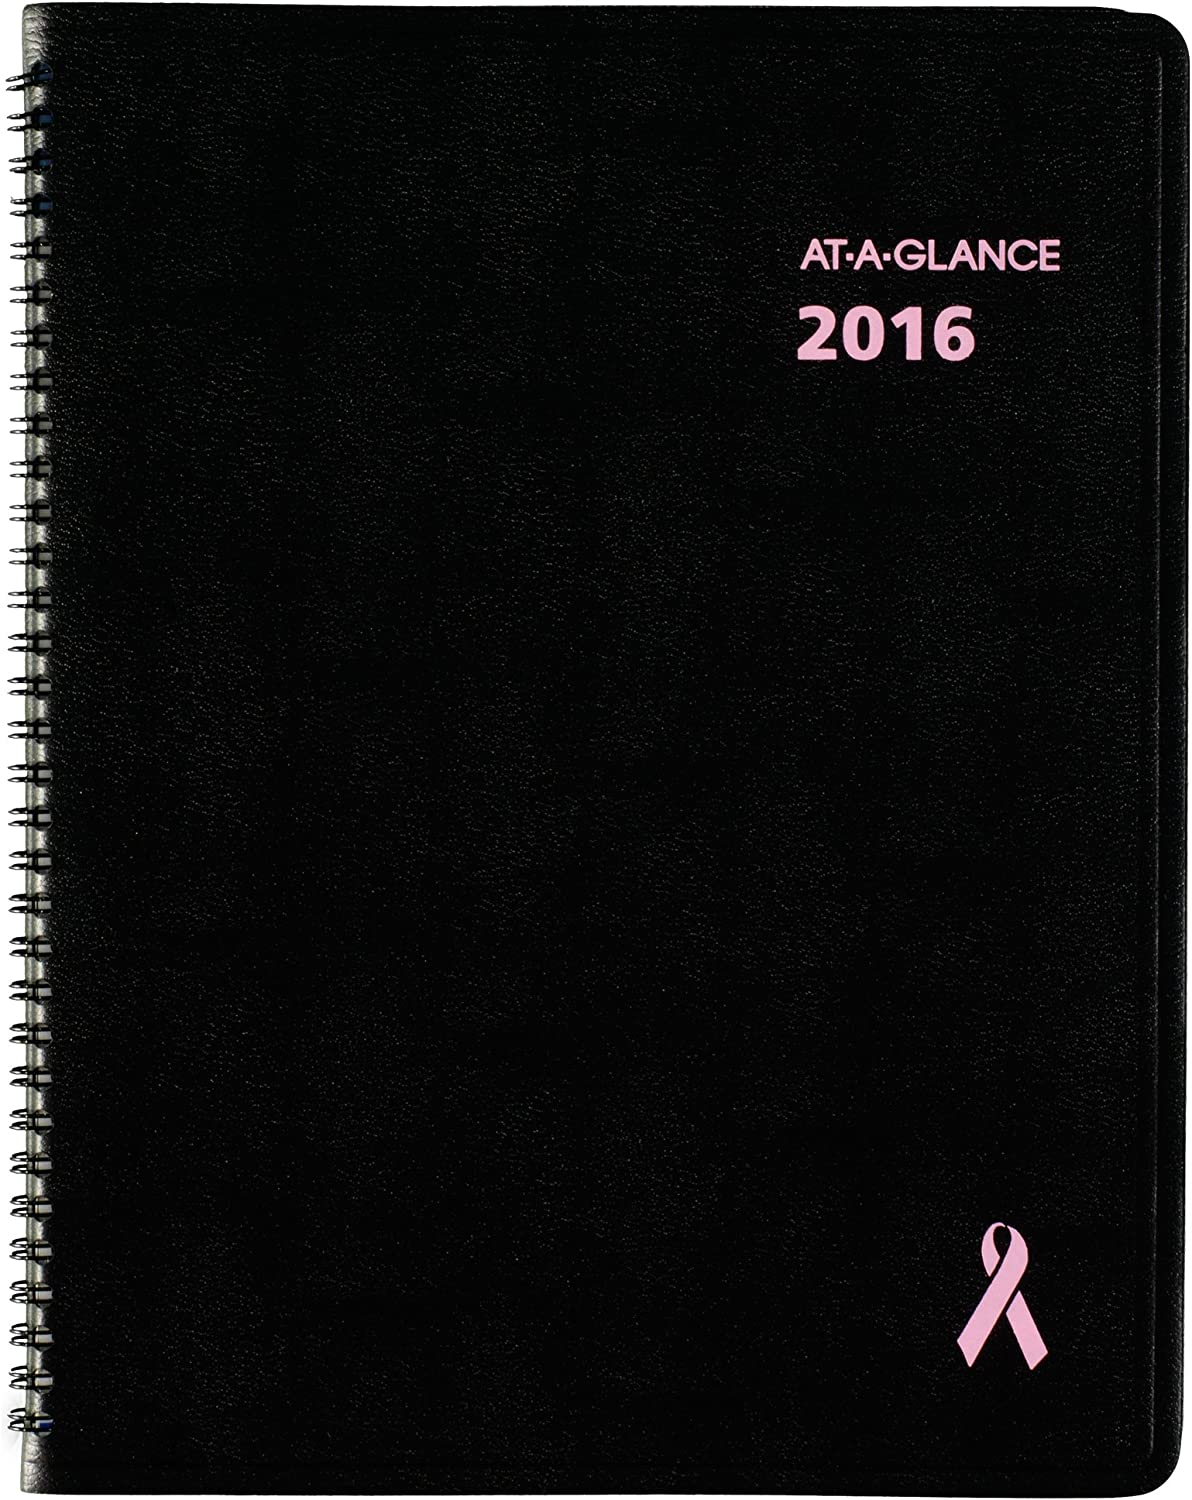 AT-A-GLANCE Monthly Planner 2016, 12 Months, Quick Notes Breast Cancer Awareness, 8.25 x 10.88 Inch Page Größe (76PN0605) by At-A-Glance B00WWVPNT8 | Elegant Und Würdevoll